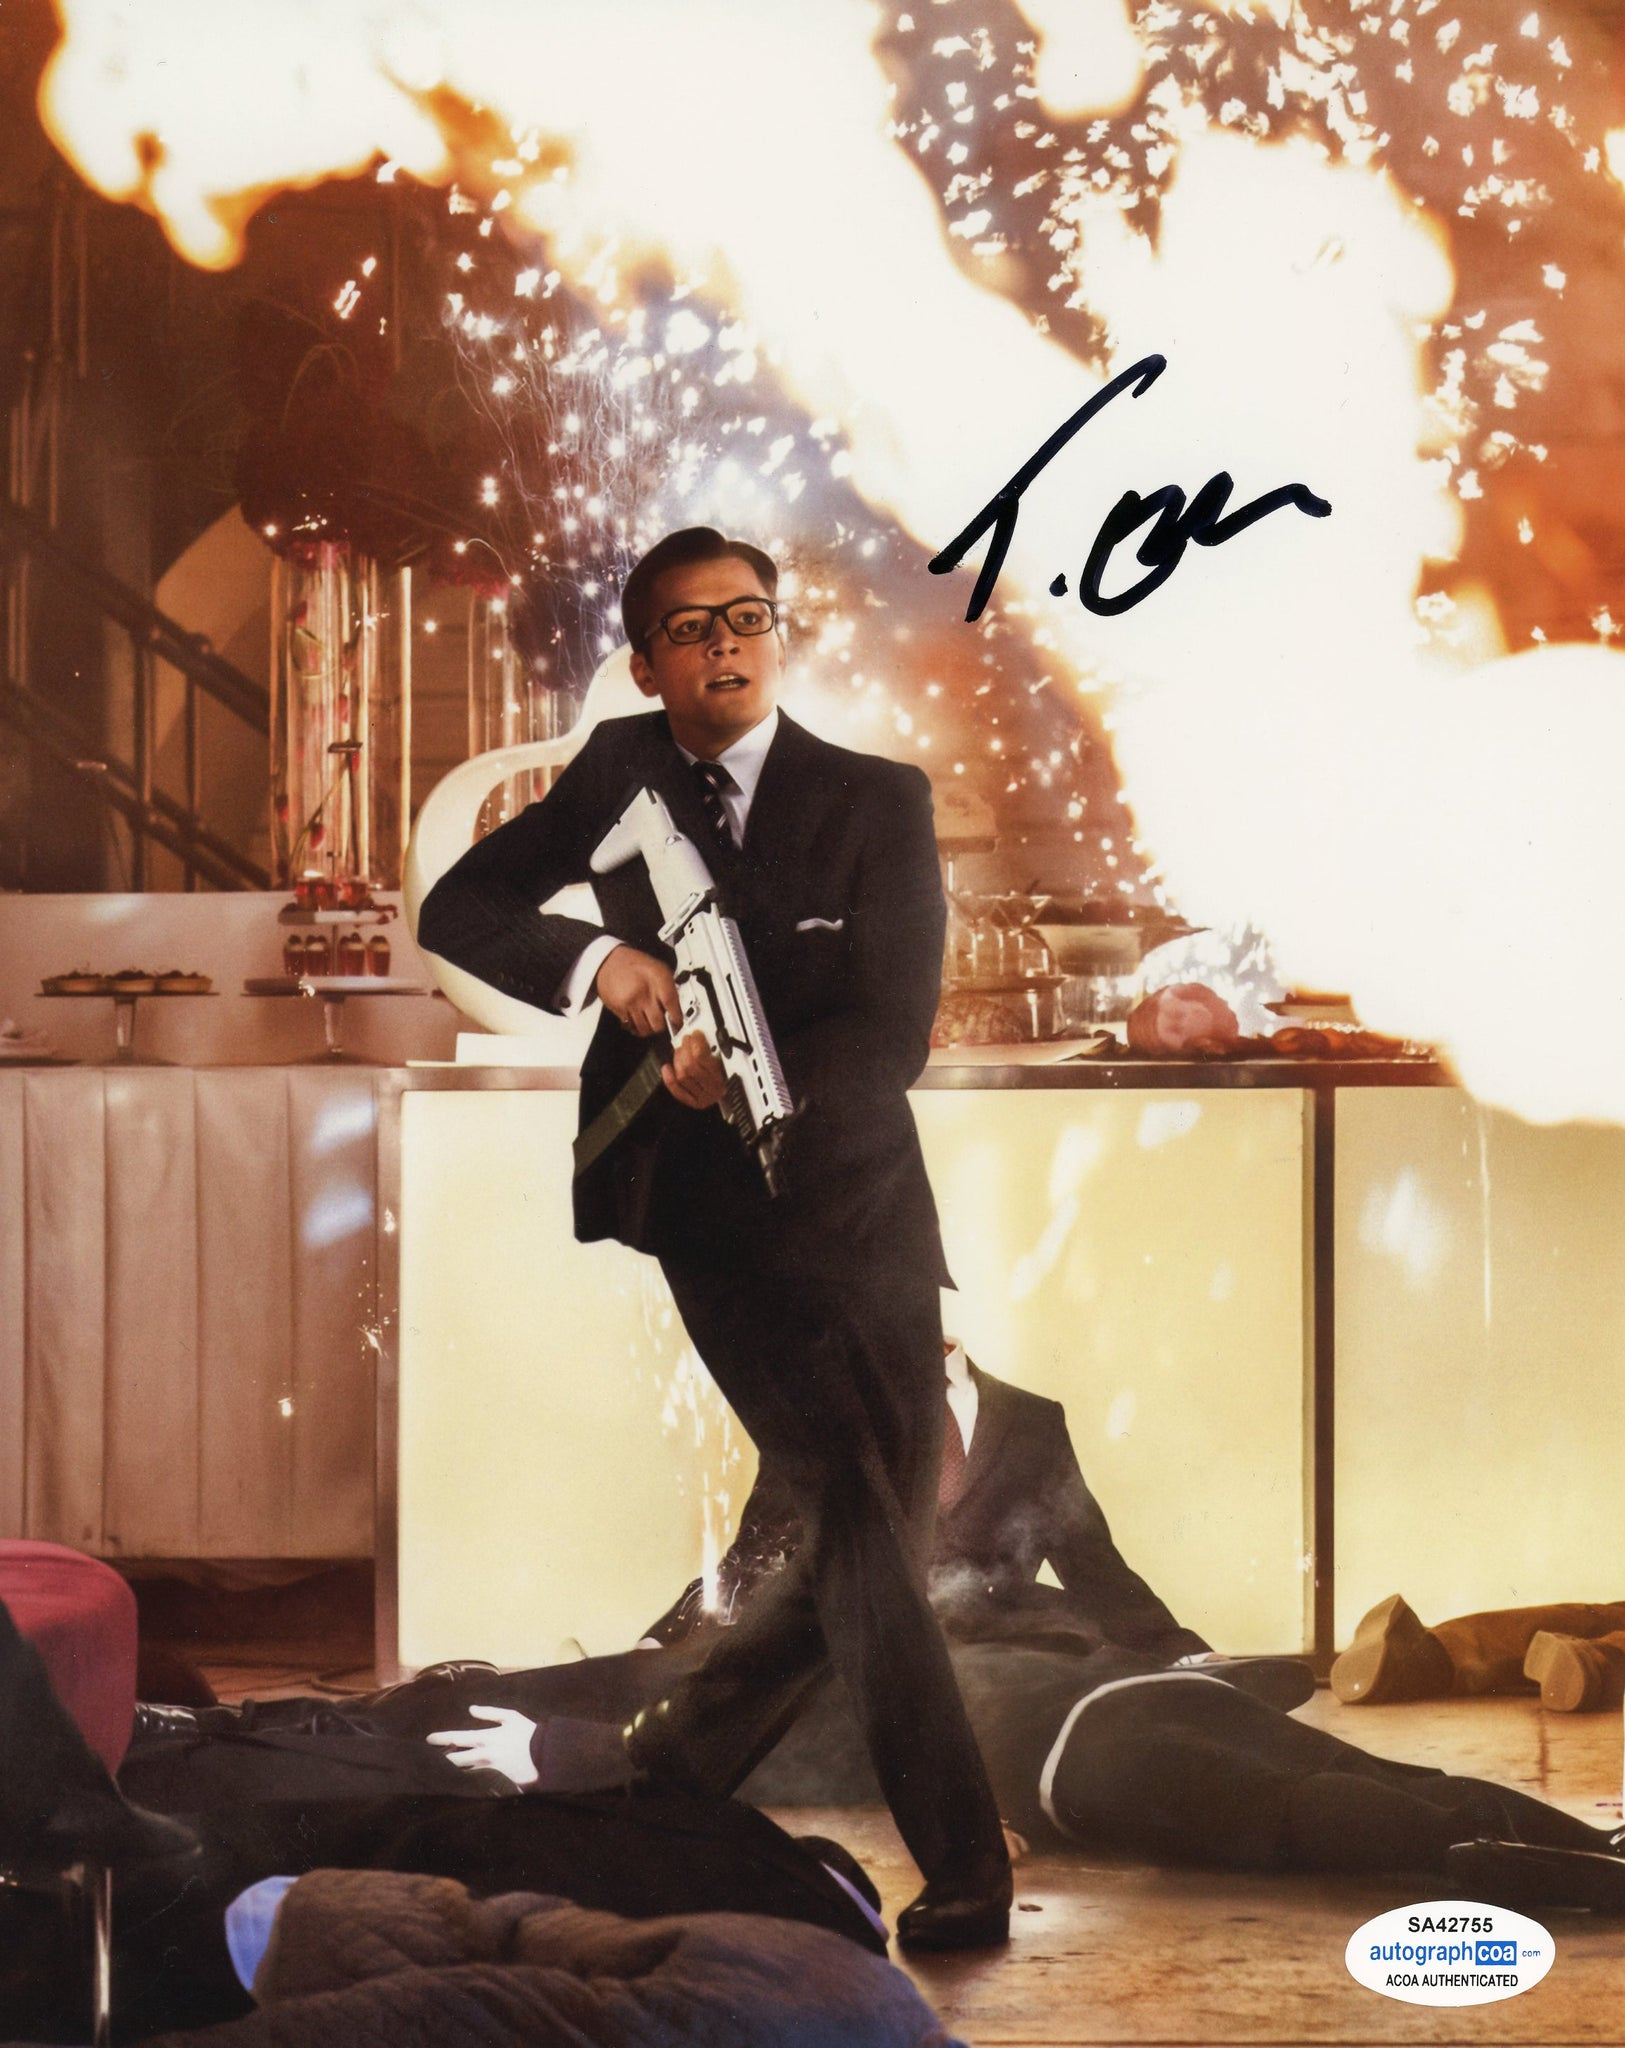 Taron Egerton Kingsman Signed Autograph 8x10 Photo ACOA #6